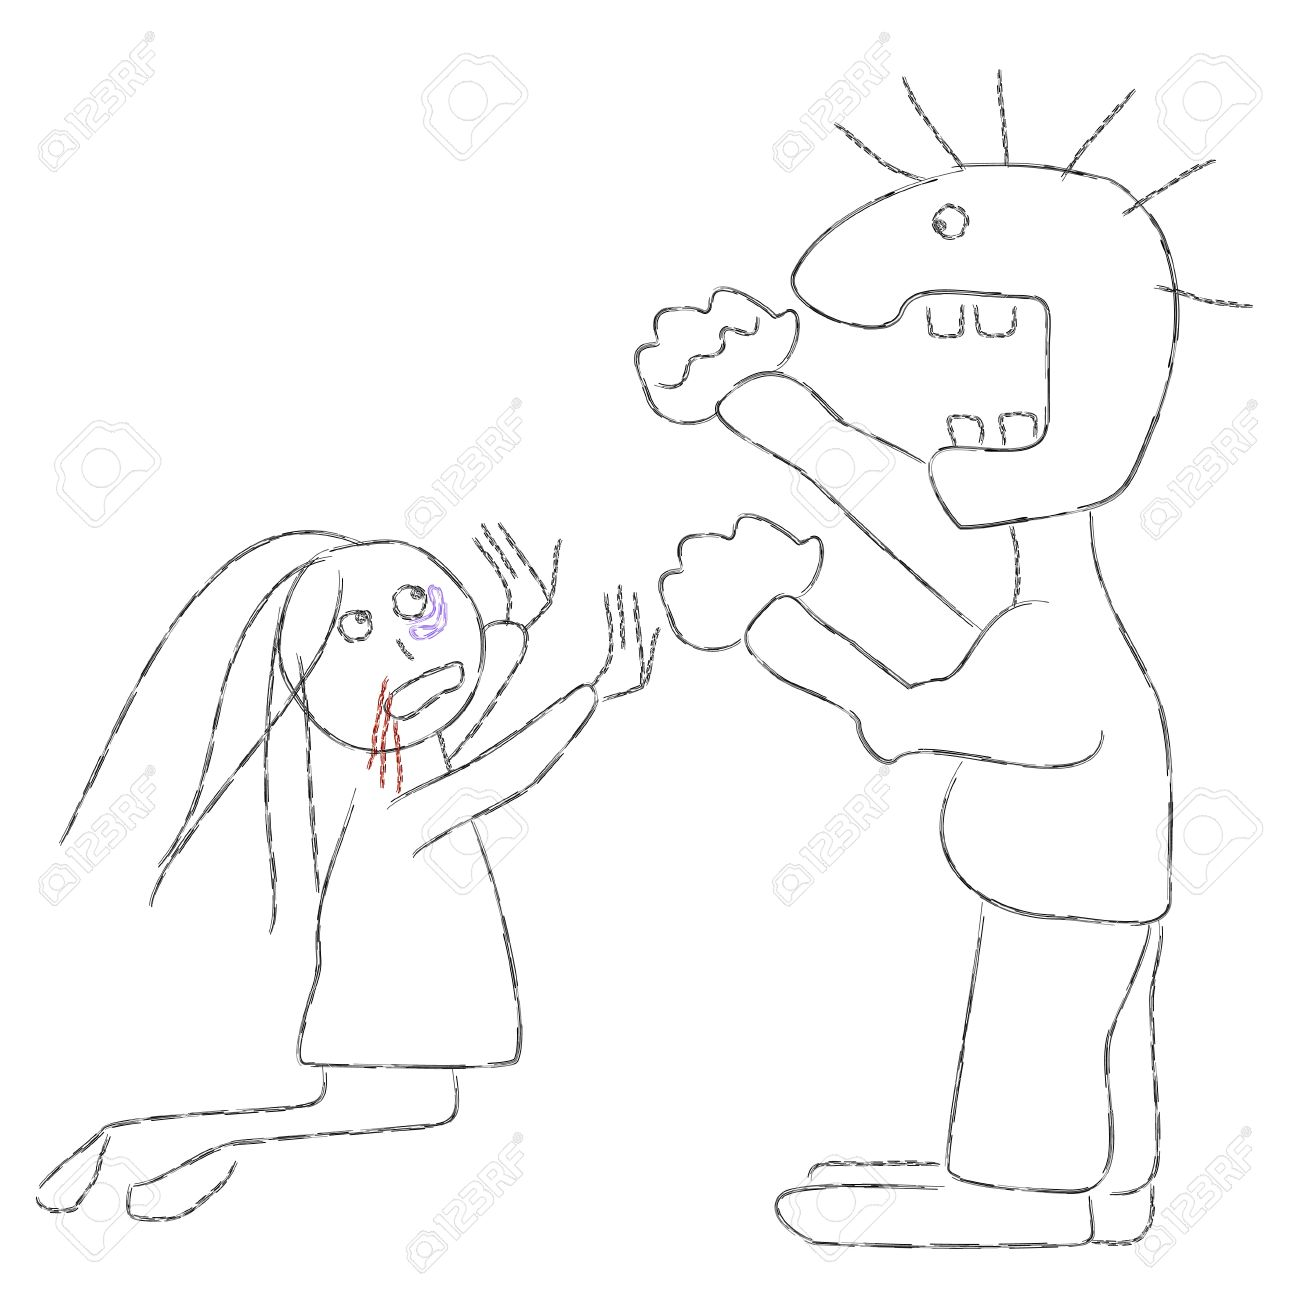 Man Hitting Woman Clipart.